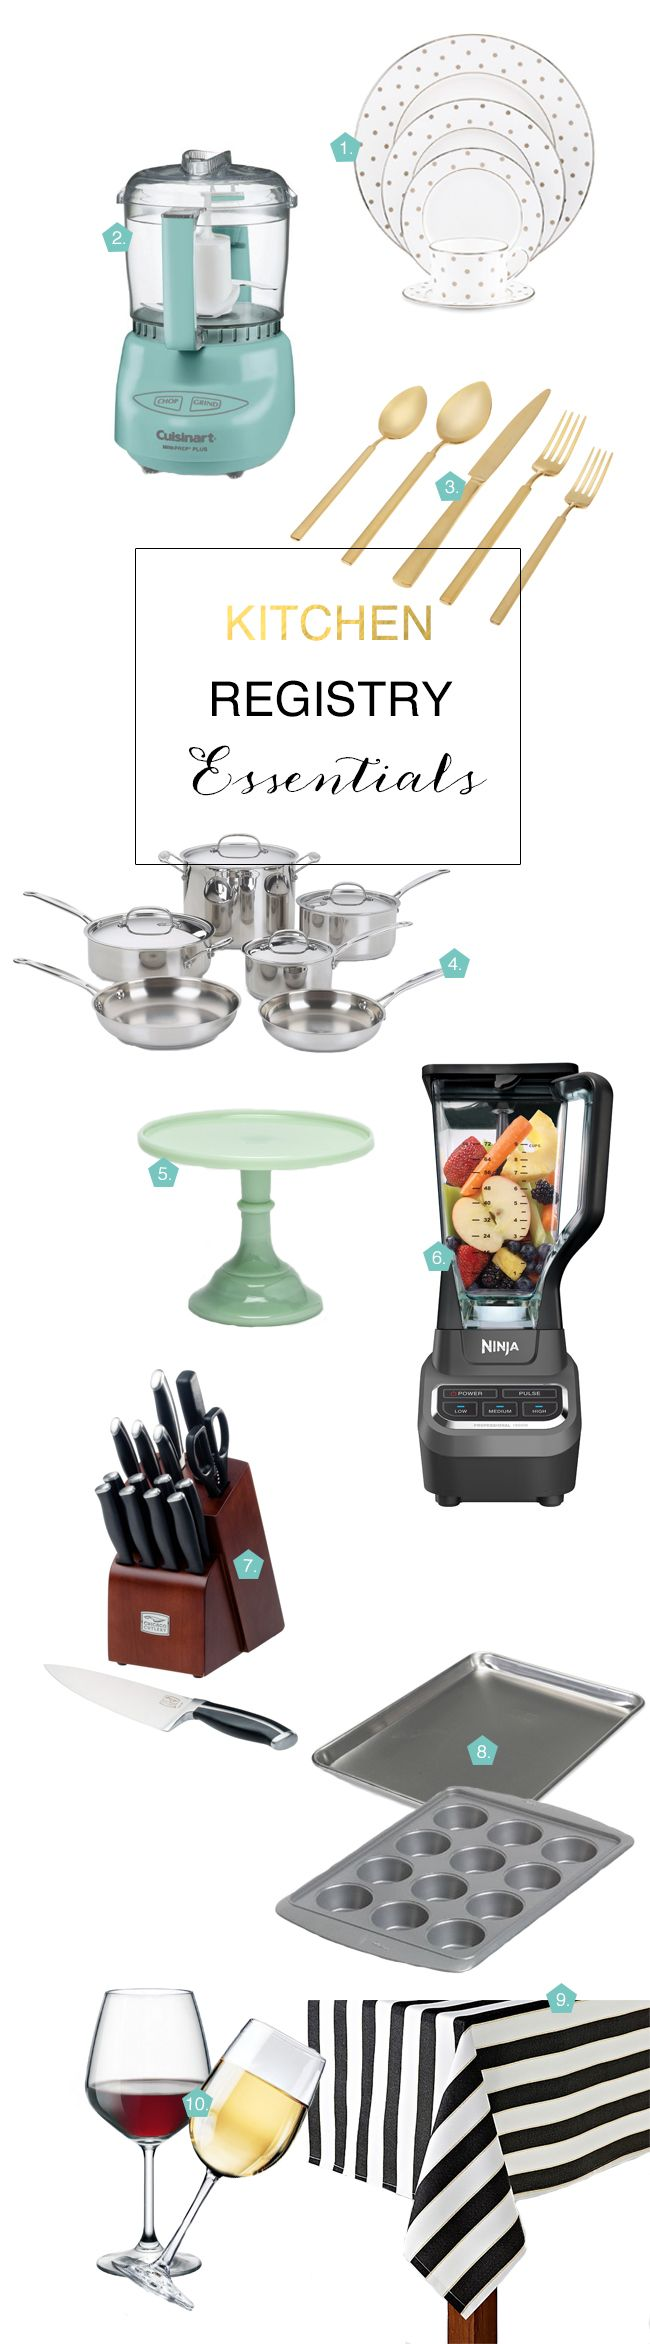 Must Have Elements For A Dream Kitchen: Must Have Kitchen Items To Register For